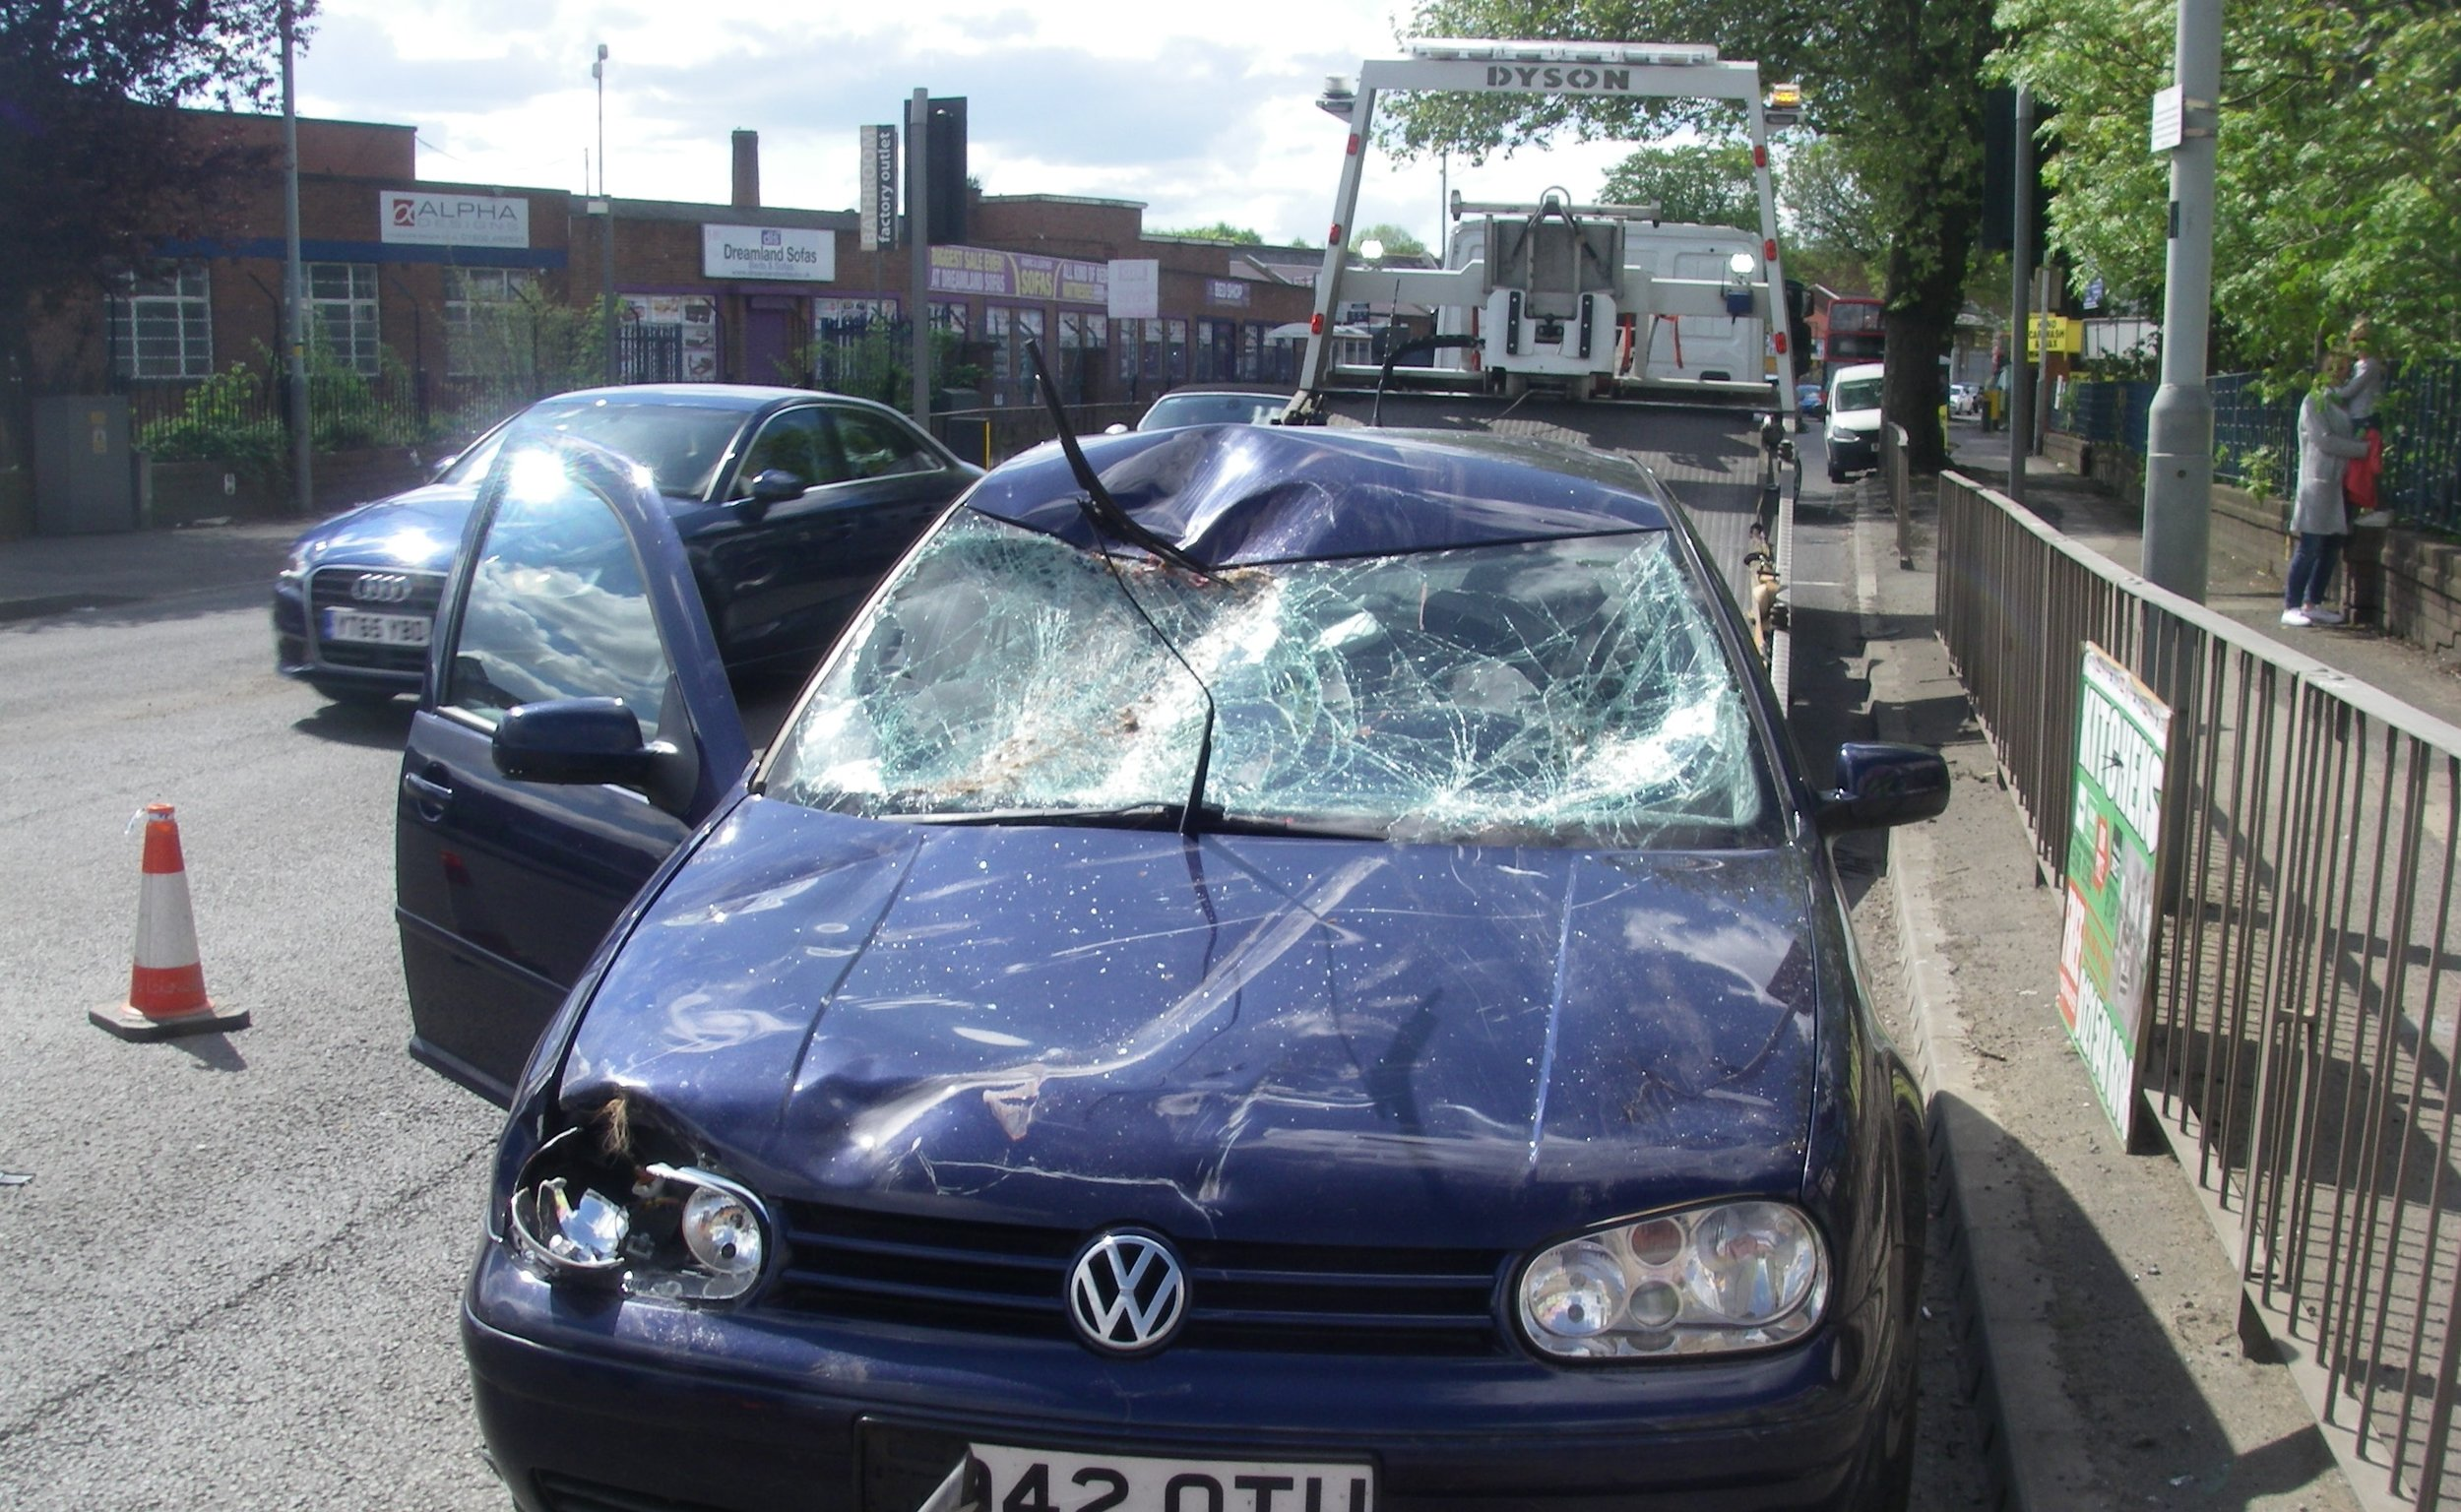 The impact smashed the windscreen of an oncoming vehicle and left the mare lying in the road